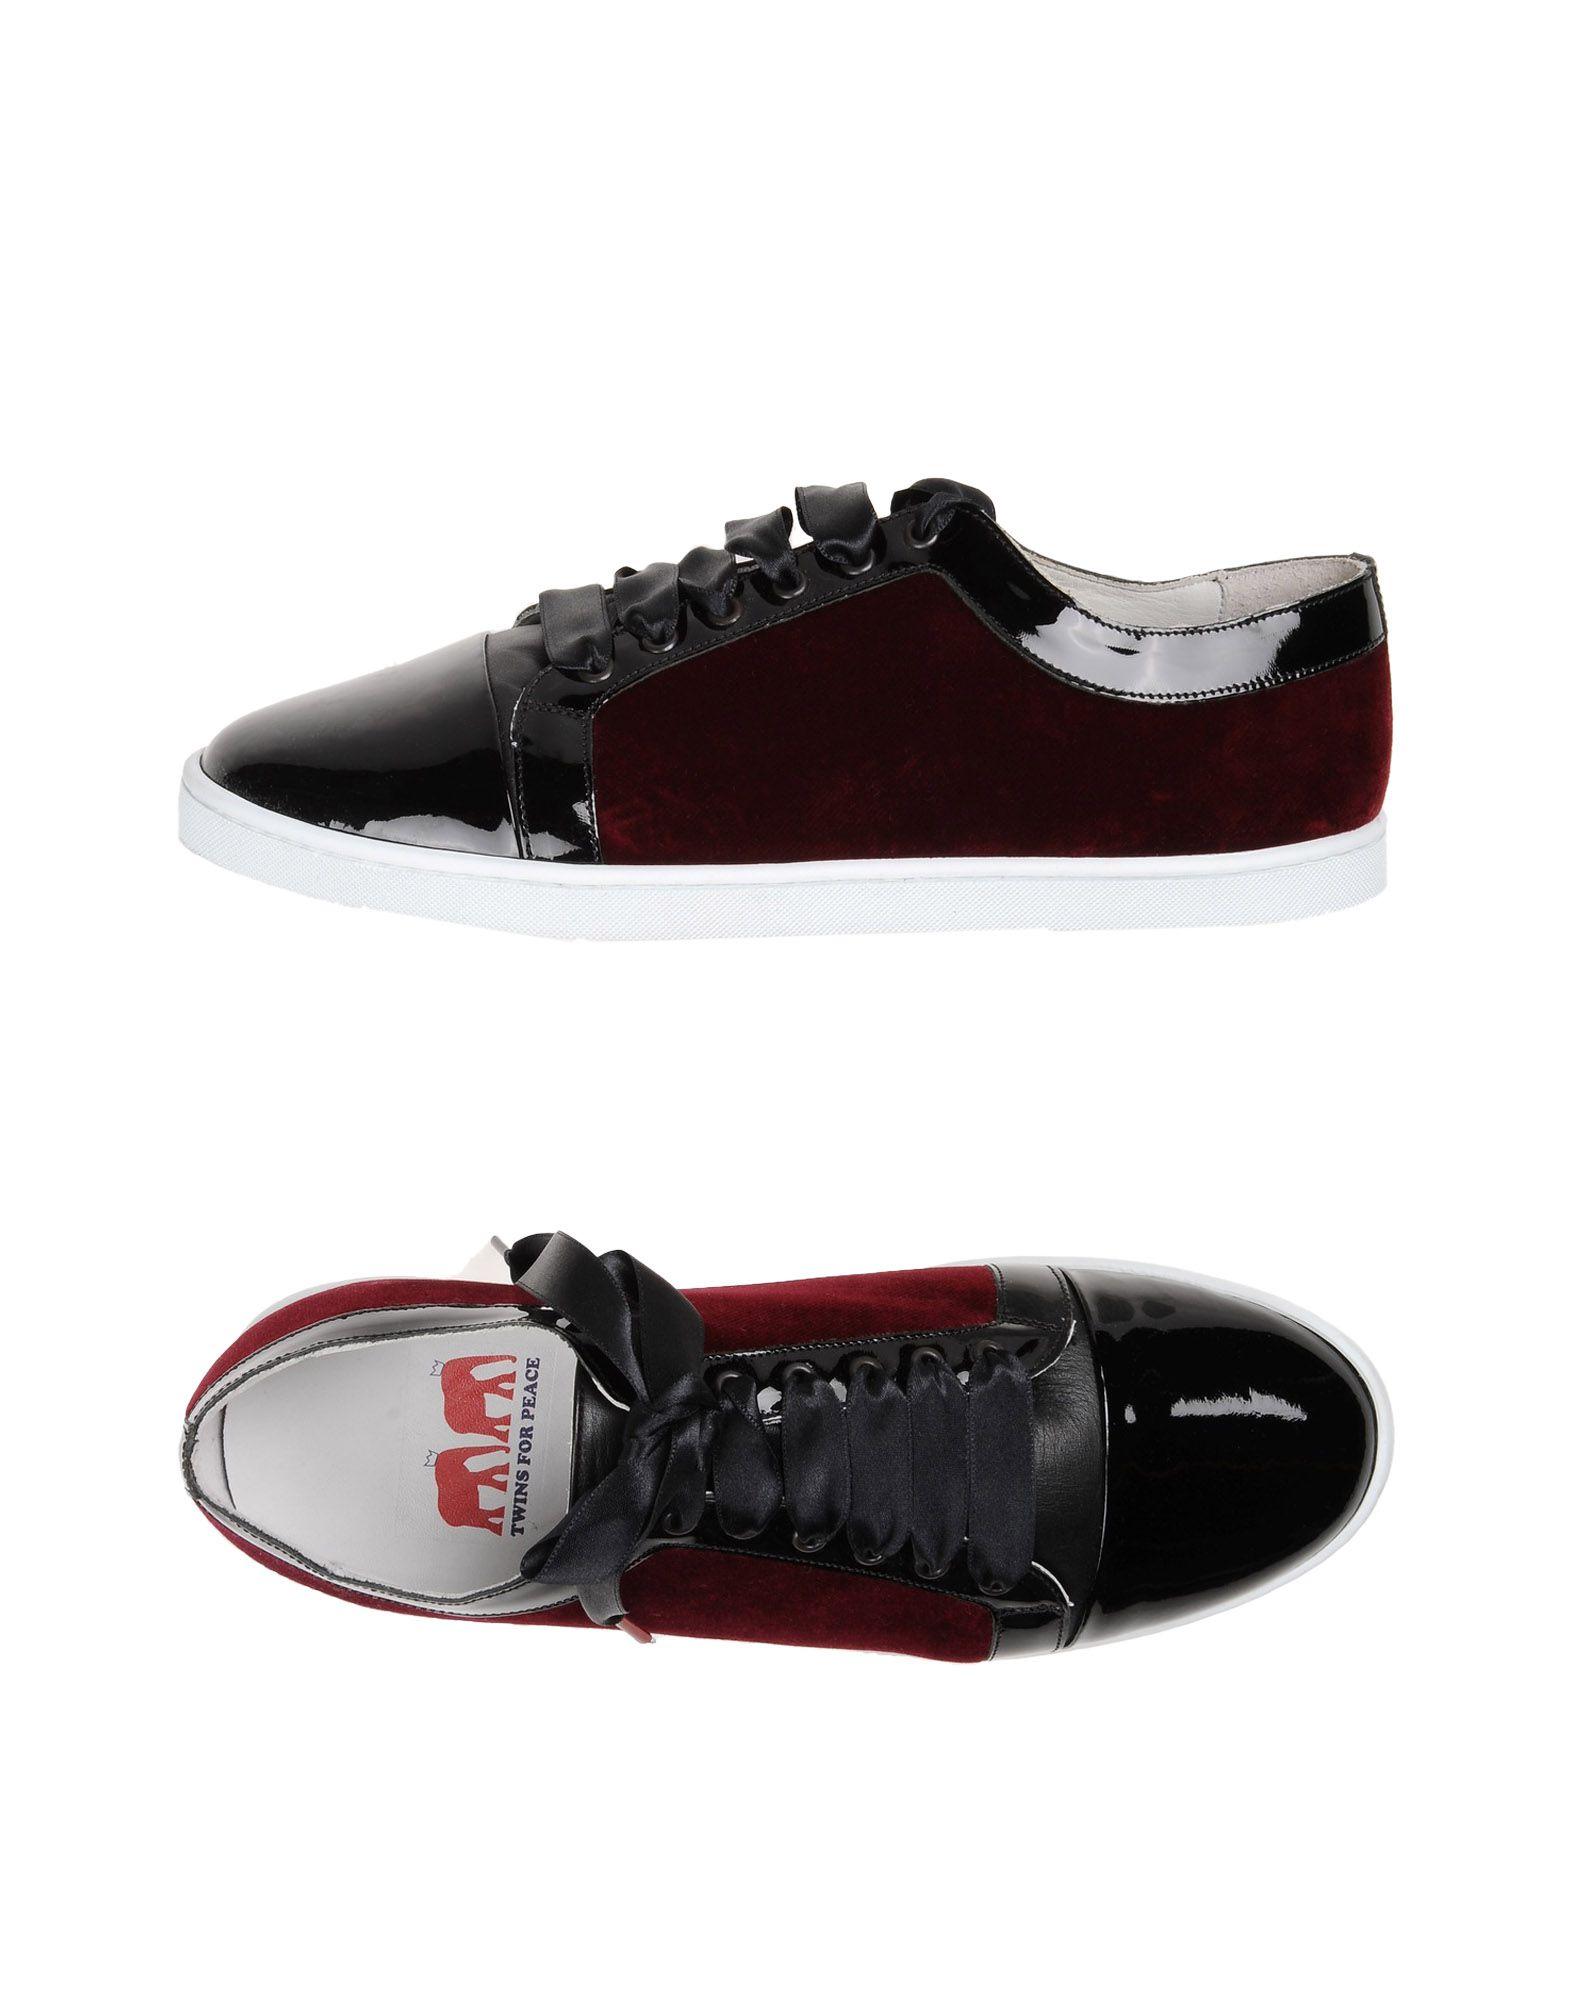 TWINS FOR PEACE Sneakers in Maroon